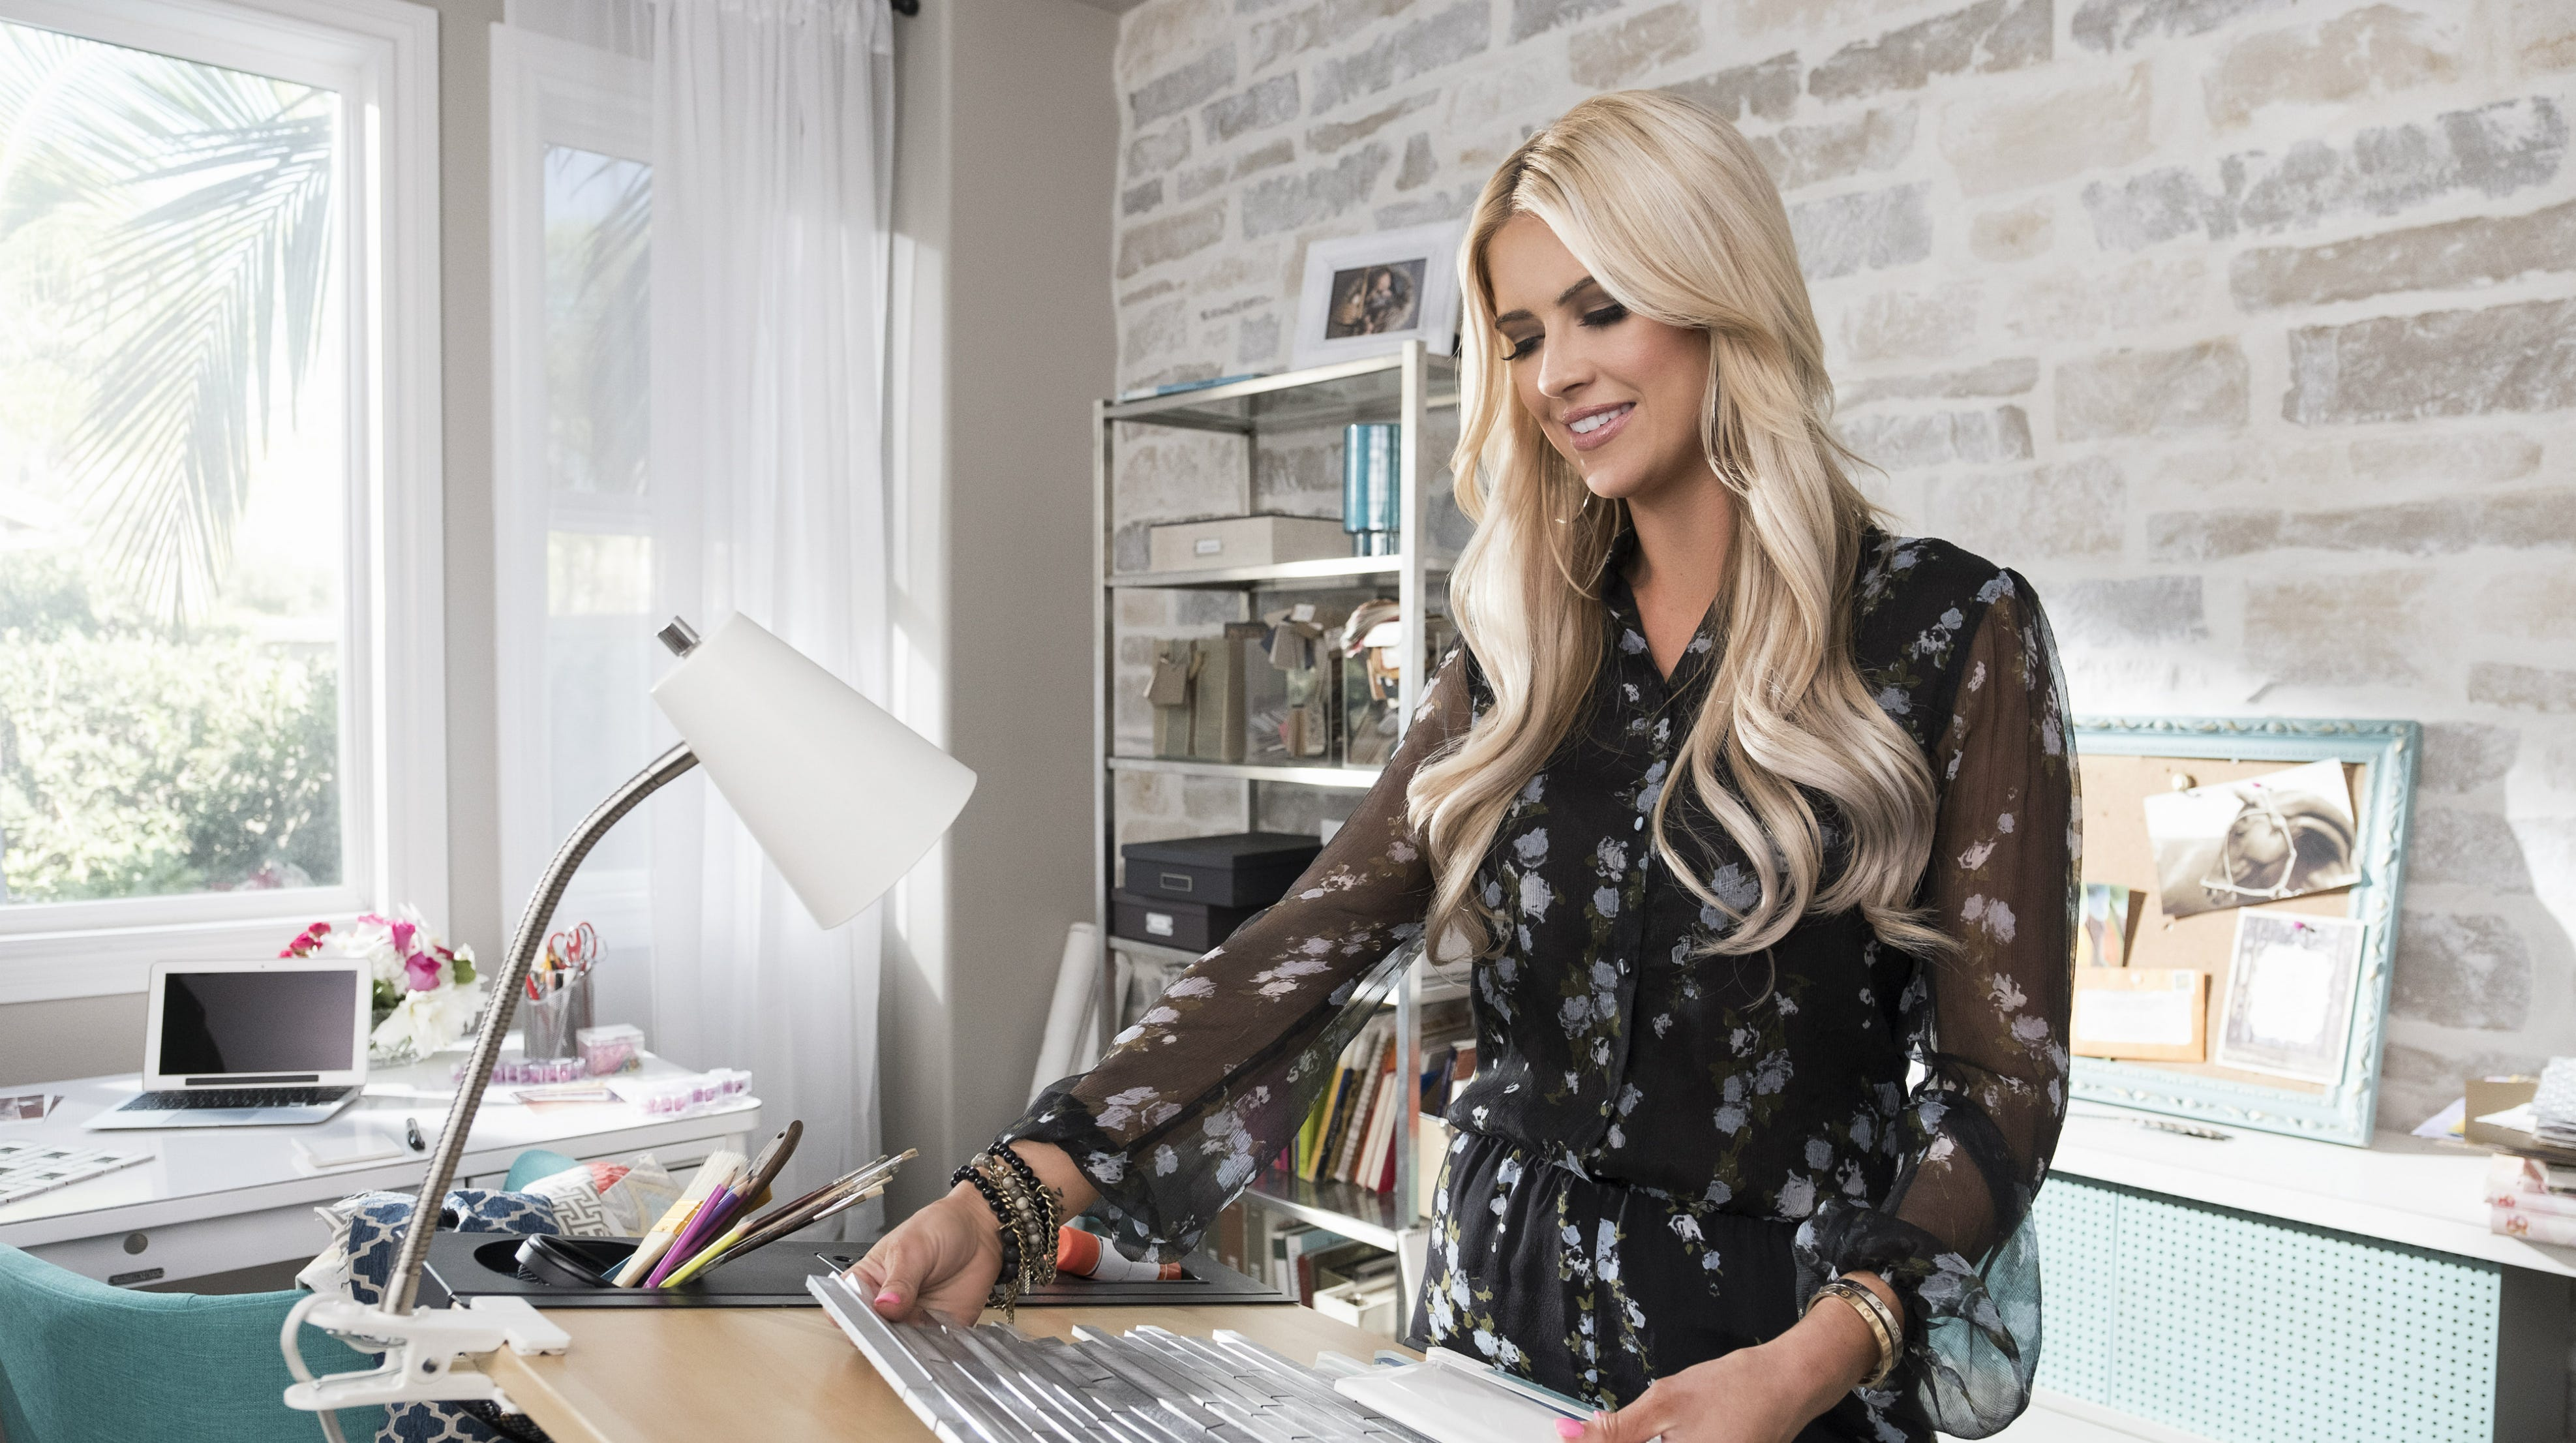 """Christina Anstead has a new HGTV show, """"Christina on the Coast,"""" which follows her design business and her life after splitting with her """"Flip or Flop"""" co-star and ex-husband, Tarek El Moussa."""